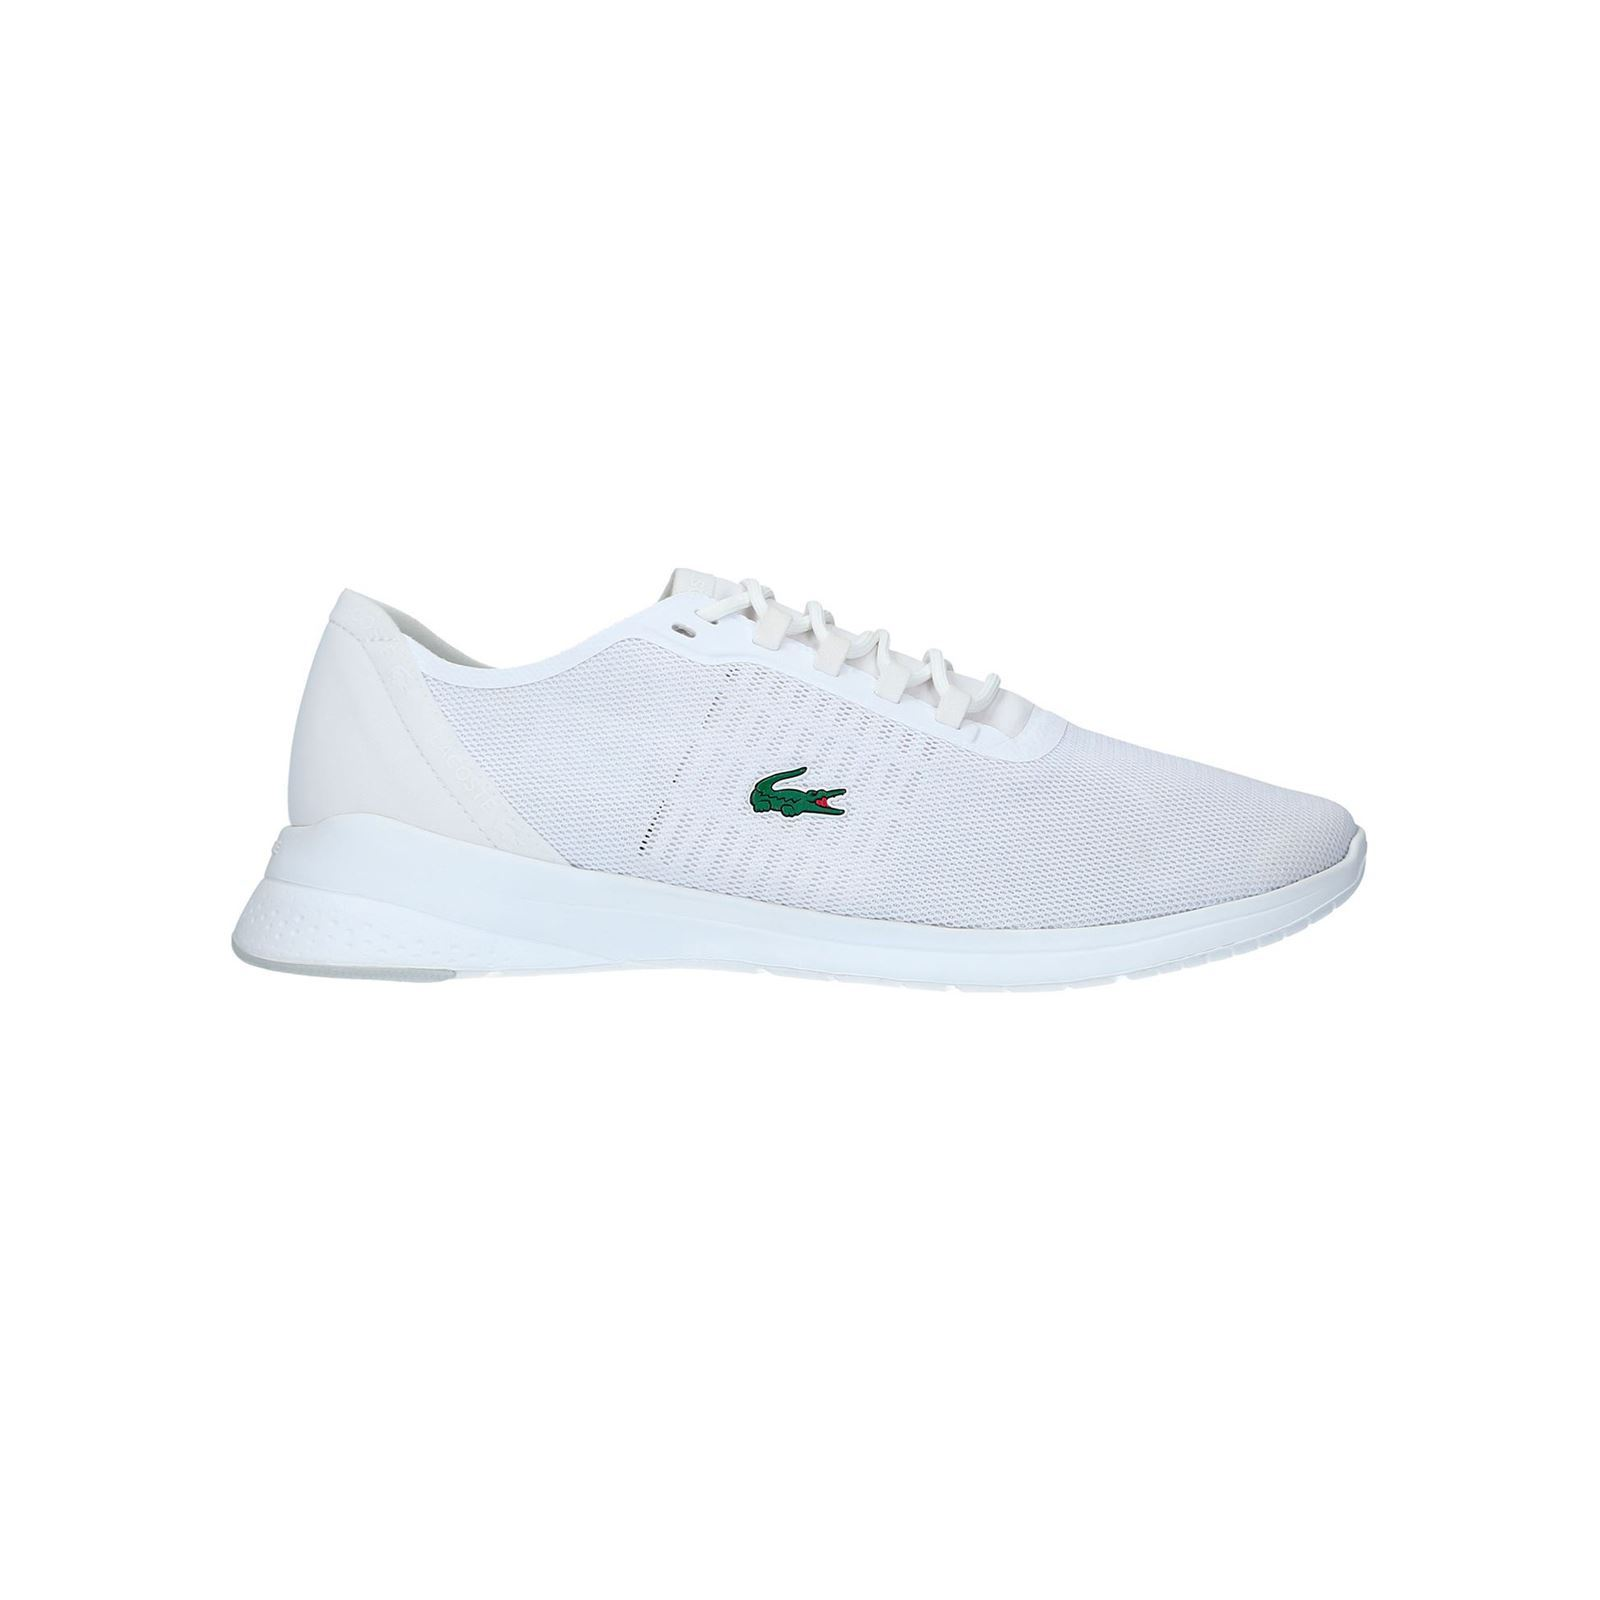 Lacoste - LT Fit 118 - Baskets - Blanc YZCf9uhF